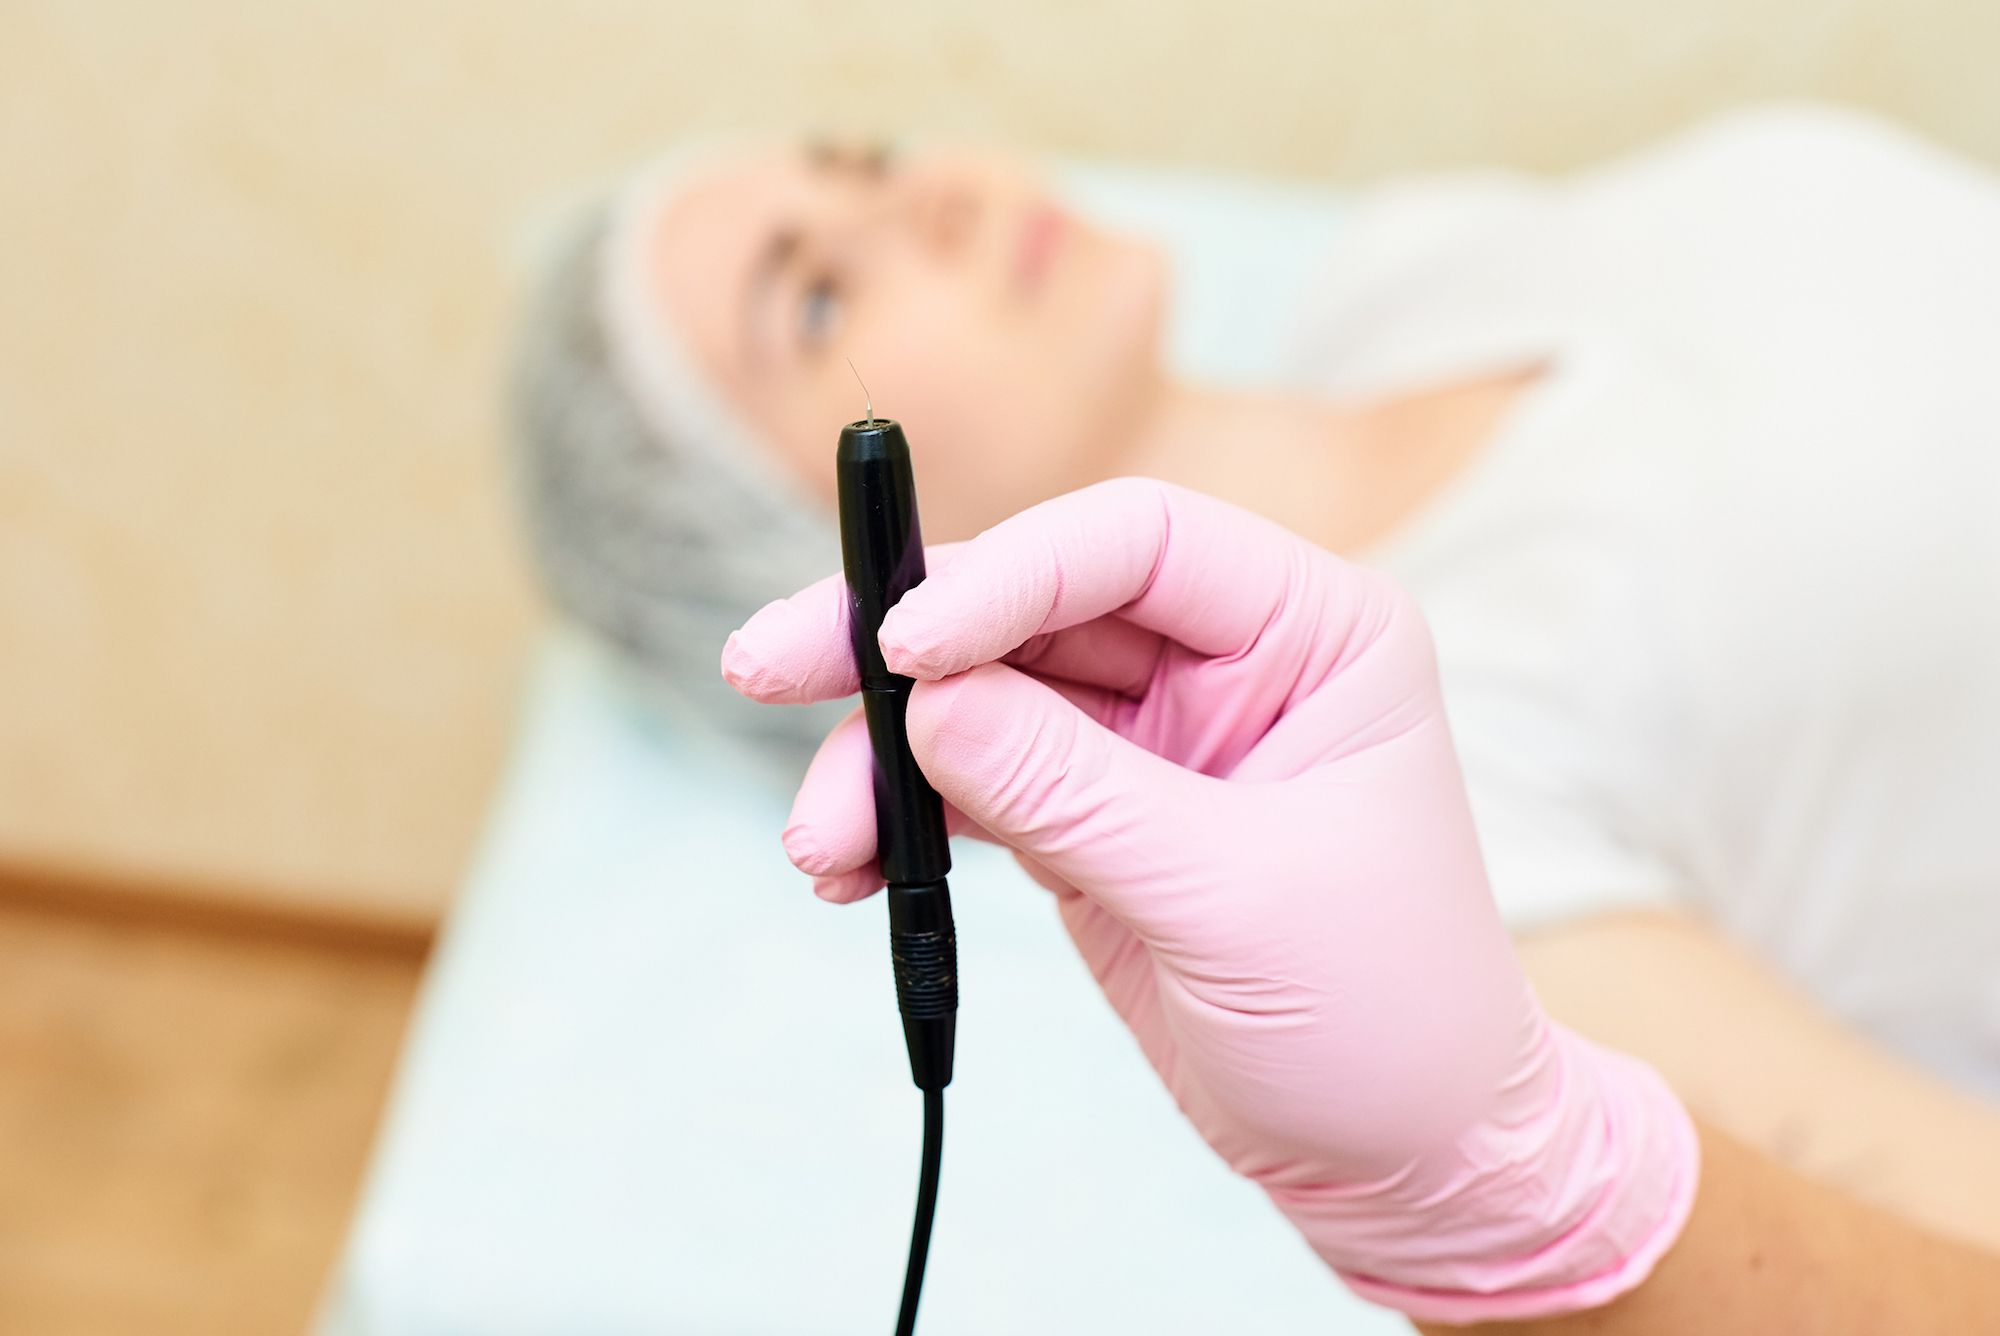 Permanent Hair Removal for Women With PCOS